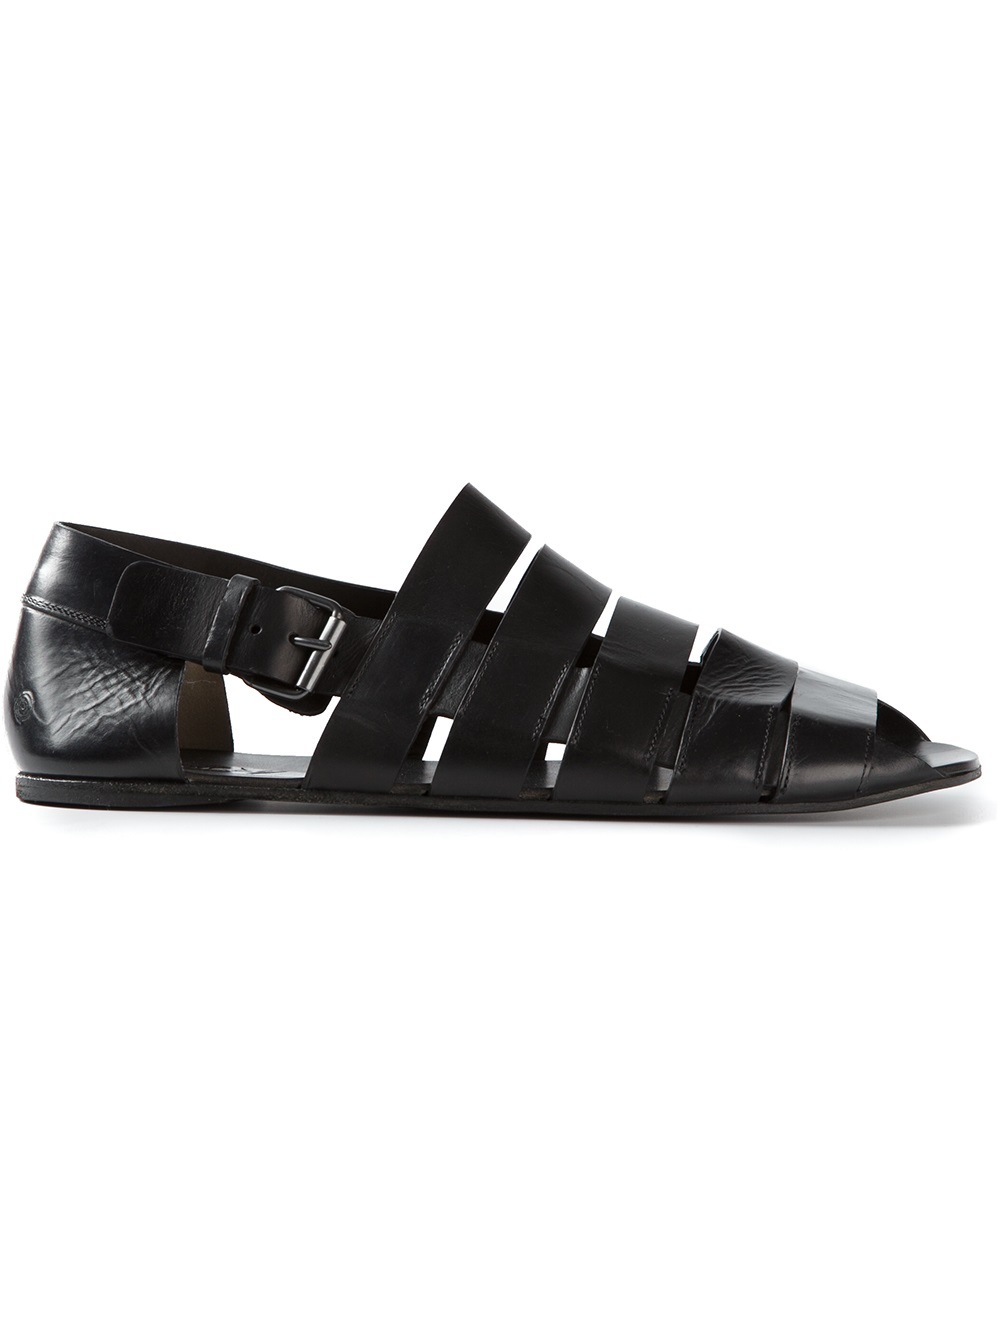 Mars 232 Ll Ankle Strap Sandals In Black For Men Lyst